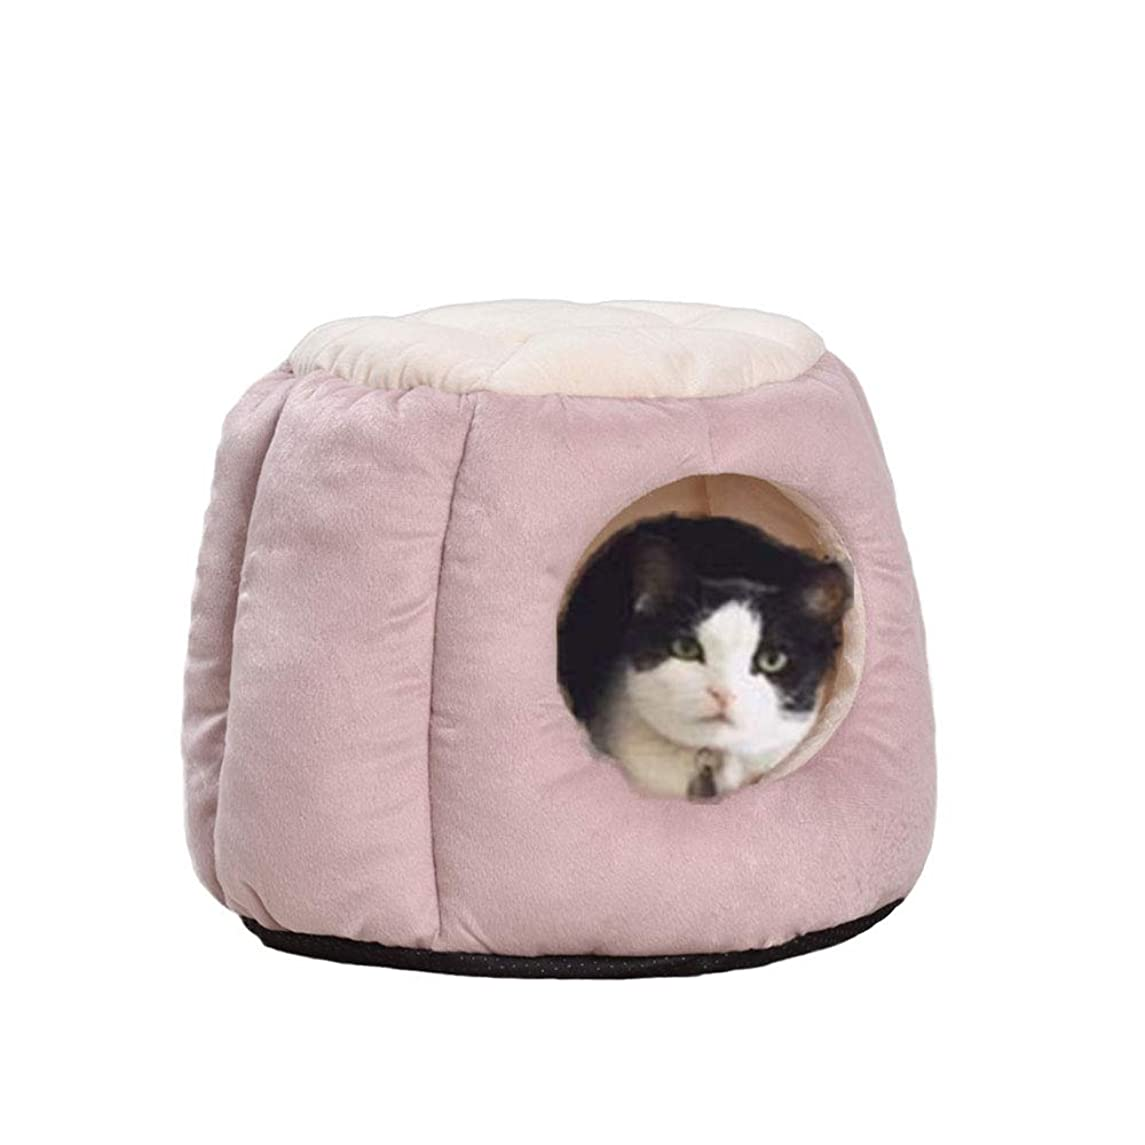 Oncpcare Kitty Cat House Small Animals House Soft Warm Rabbit Hut Frustum-Shape Guinea Pig Bed Hideout with Removable Cushion for Winter